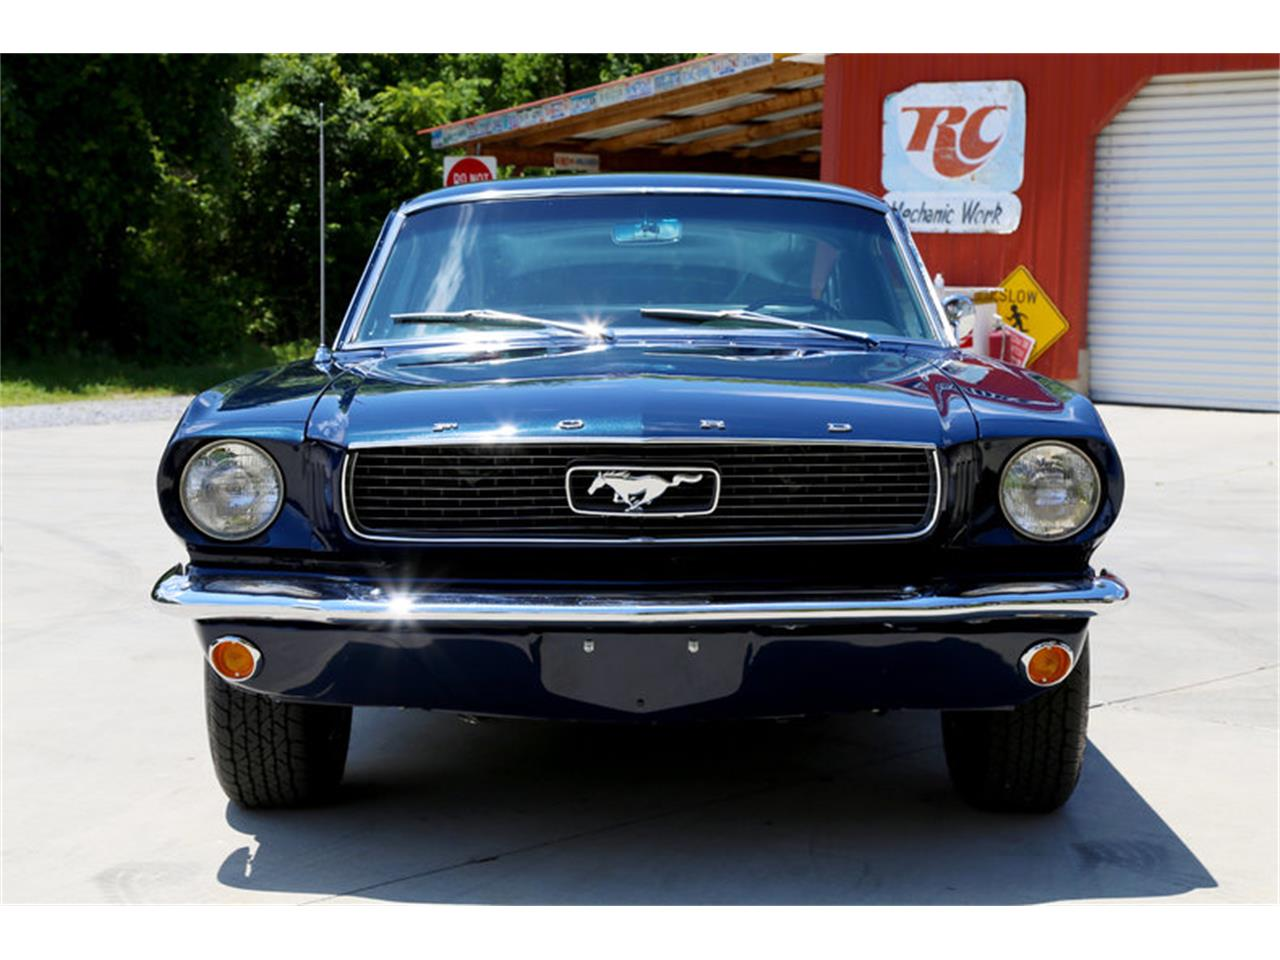 Large Picture of '66 Ford Mustang located in Tennessee Offered by Smoky Mountain Traders - LDLT